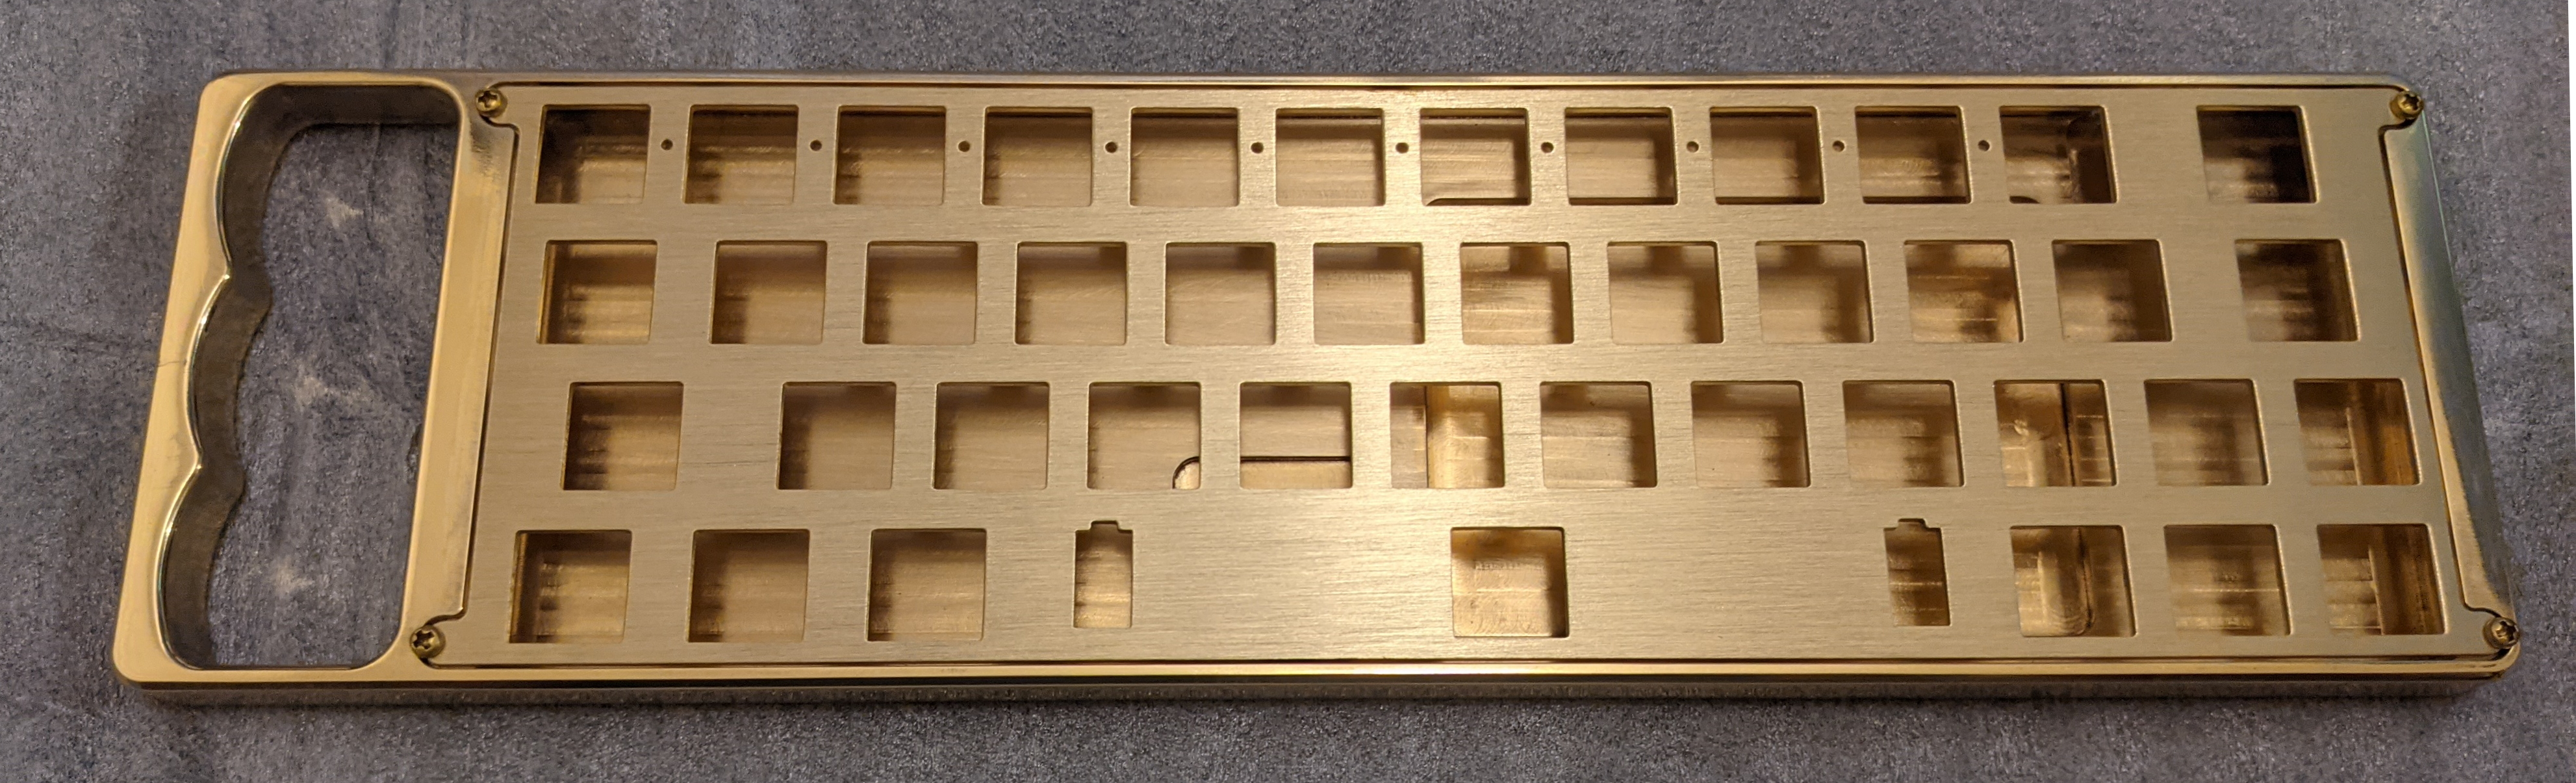 Brass Knuckhull with the optional brushed brass plate